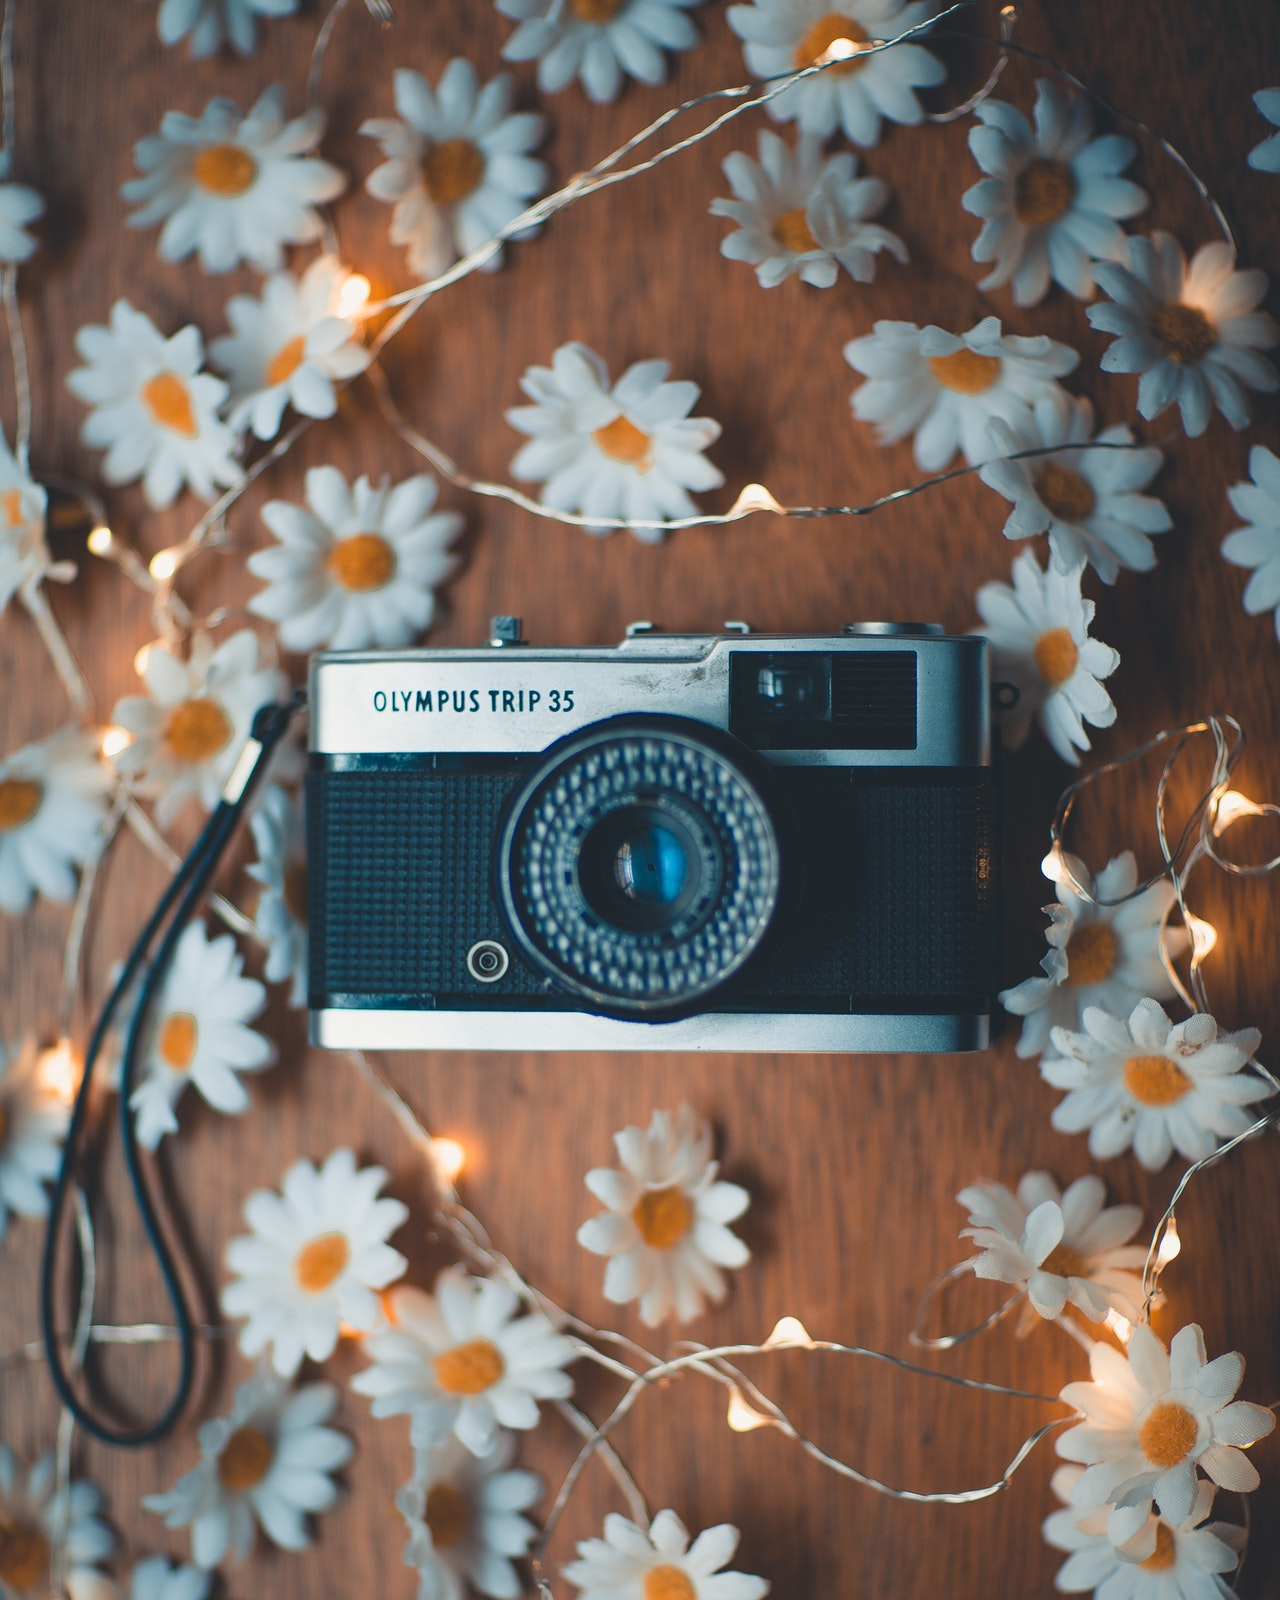 photo of analog camera surrounded by string lights